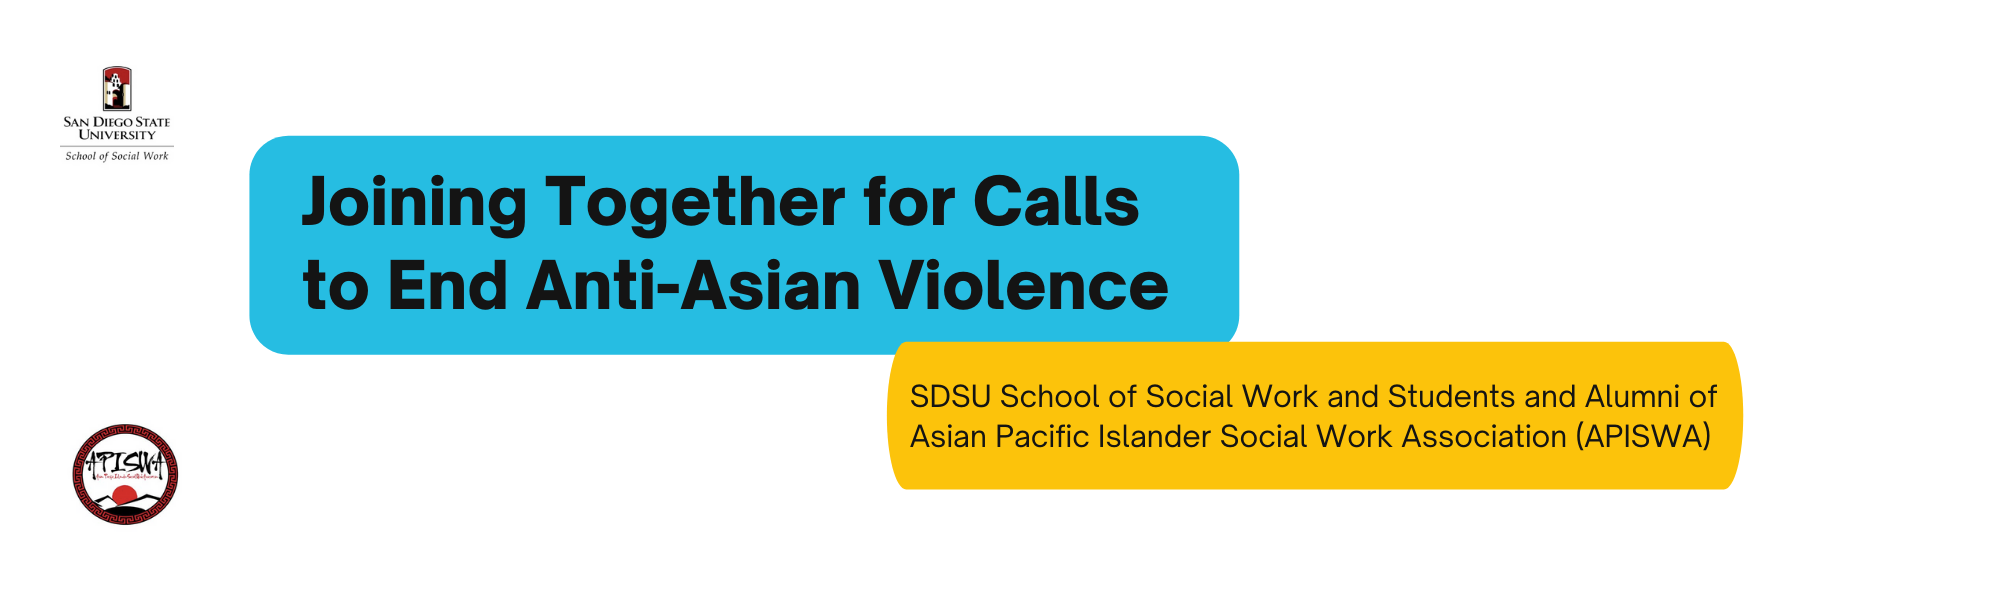 Joining Together for Calls to End Anti-Asian Violence